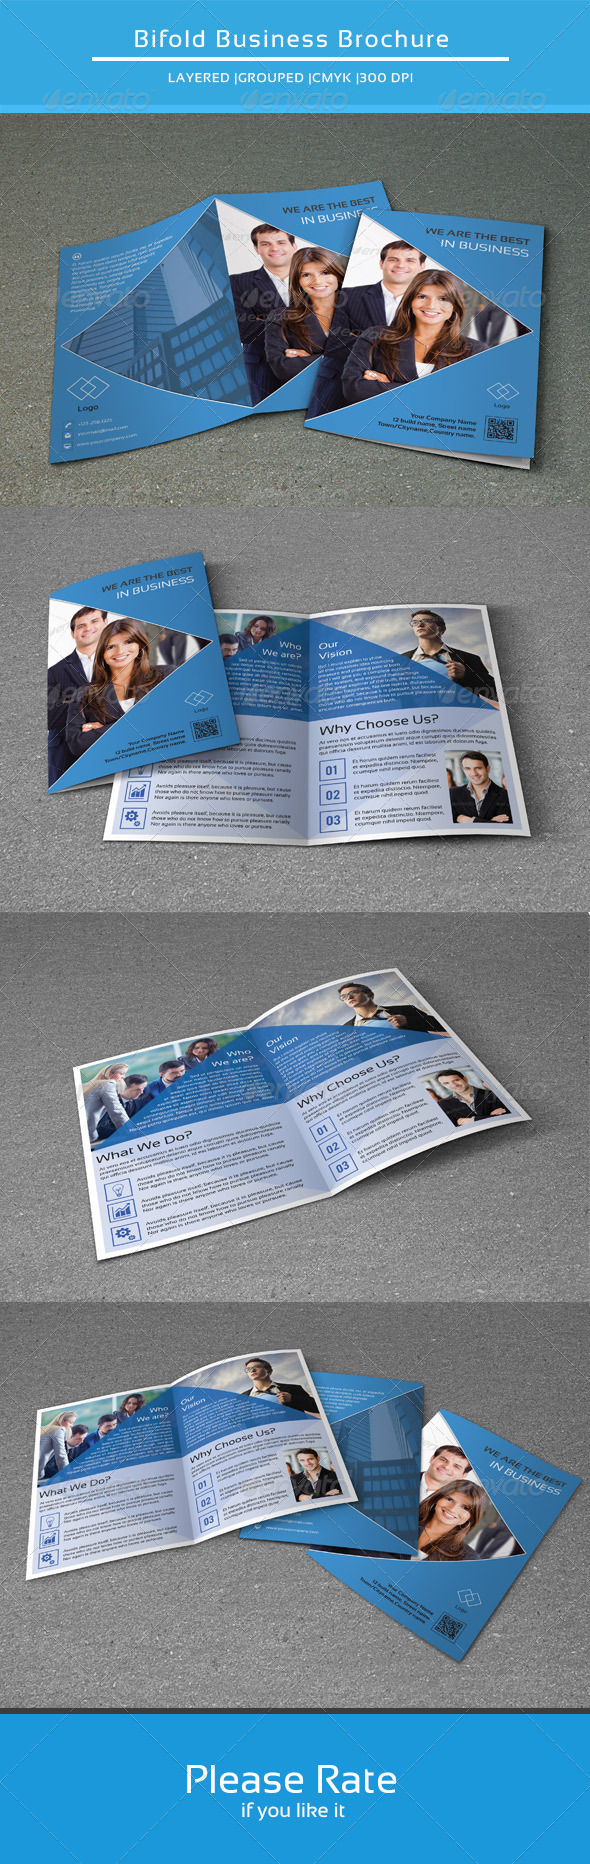 GraphicRiver Bifold Business Brochure-V101 8411684